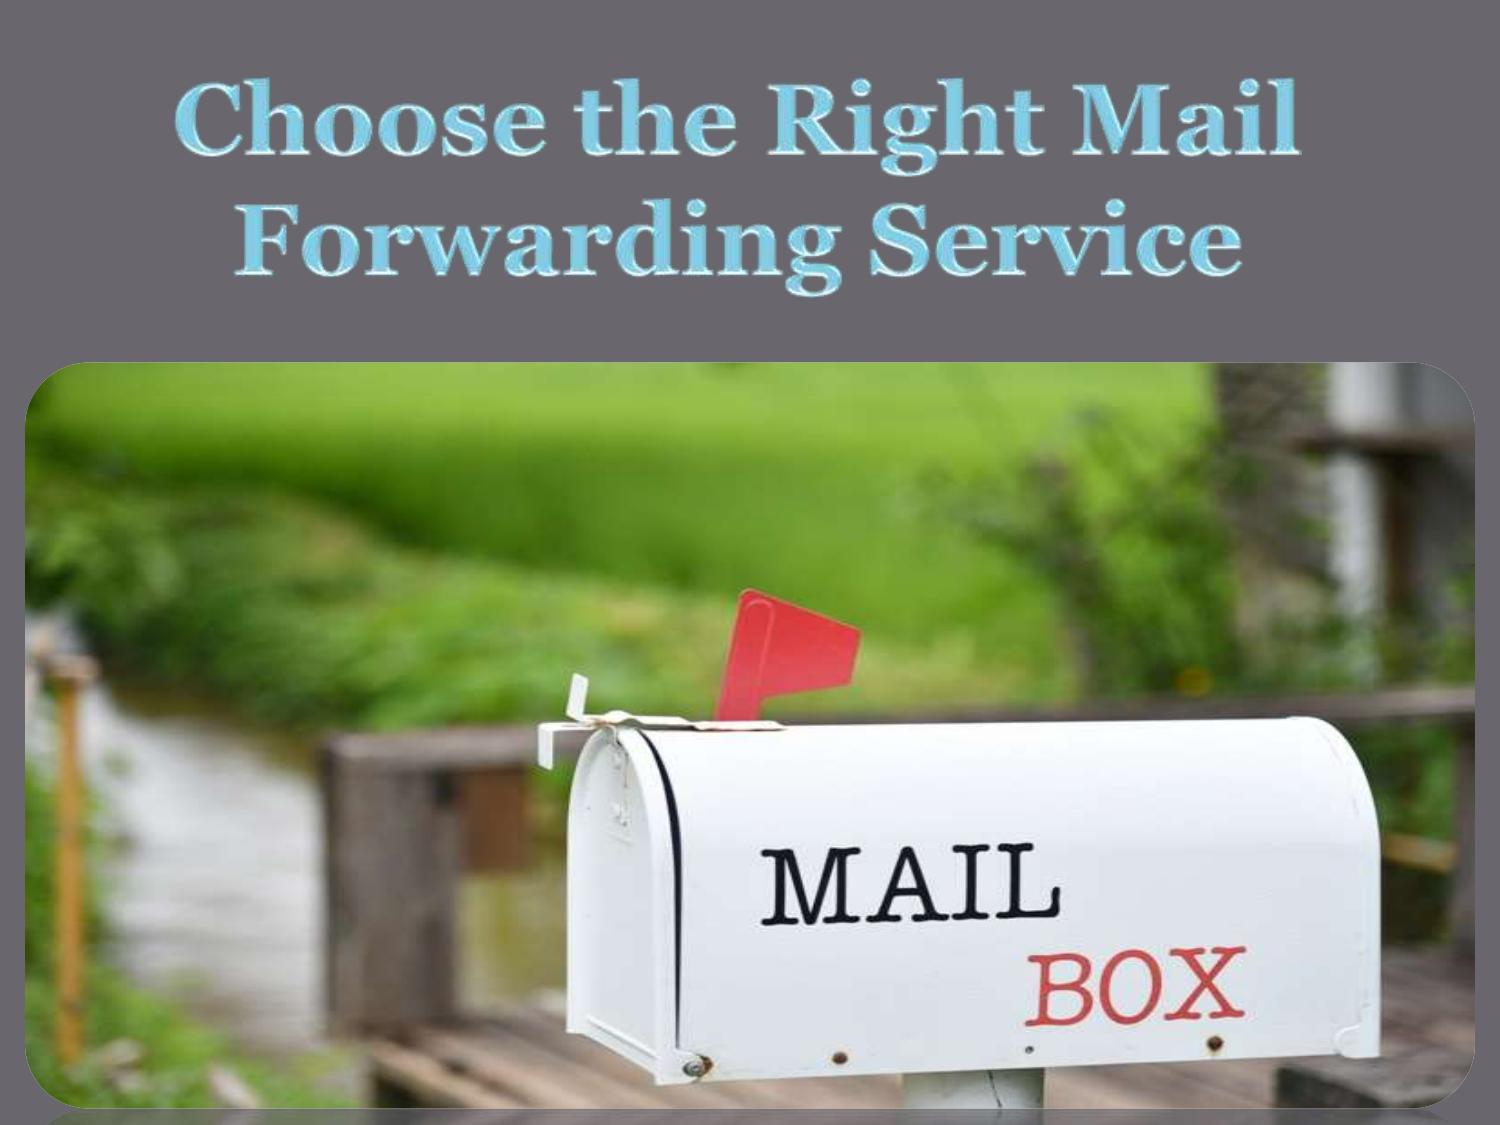 Choose the Right Mail Forwarding Service by LowCost